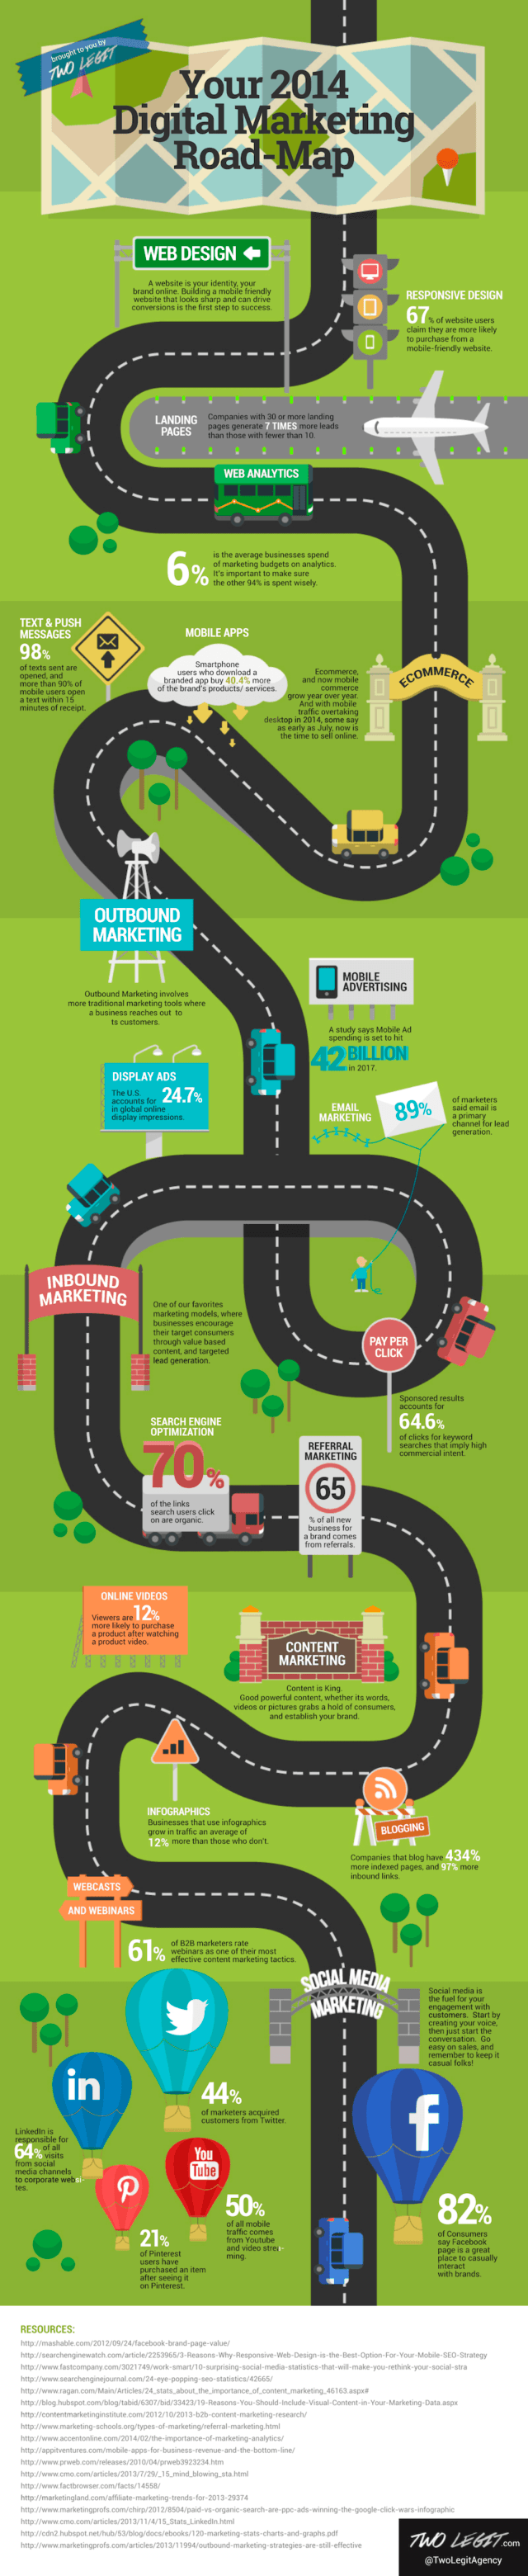 2014-digital-marketing-roadmap